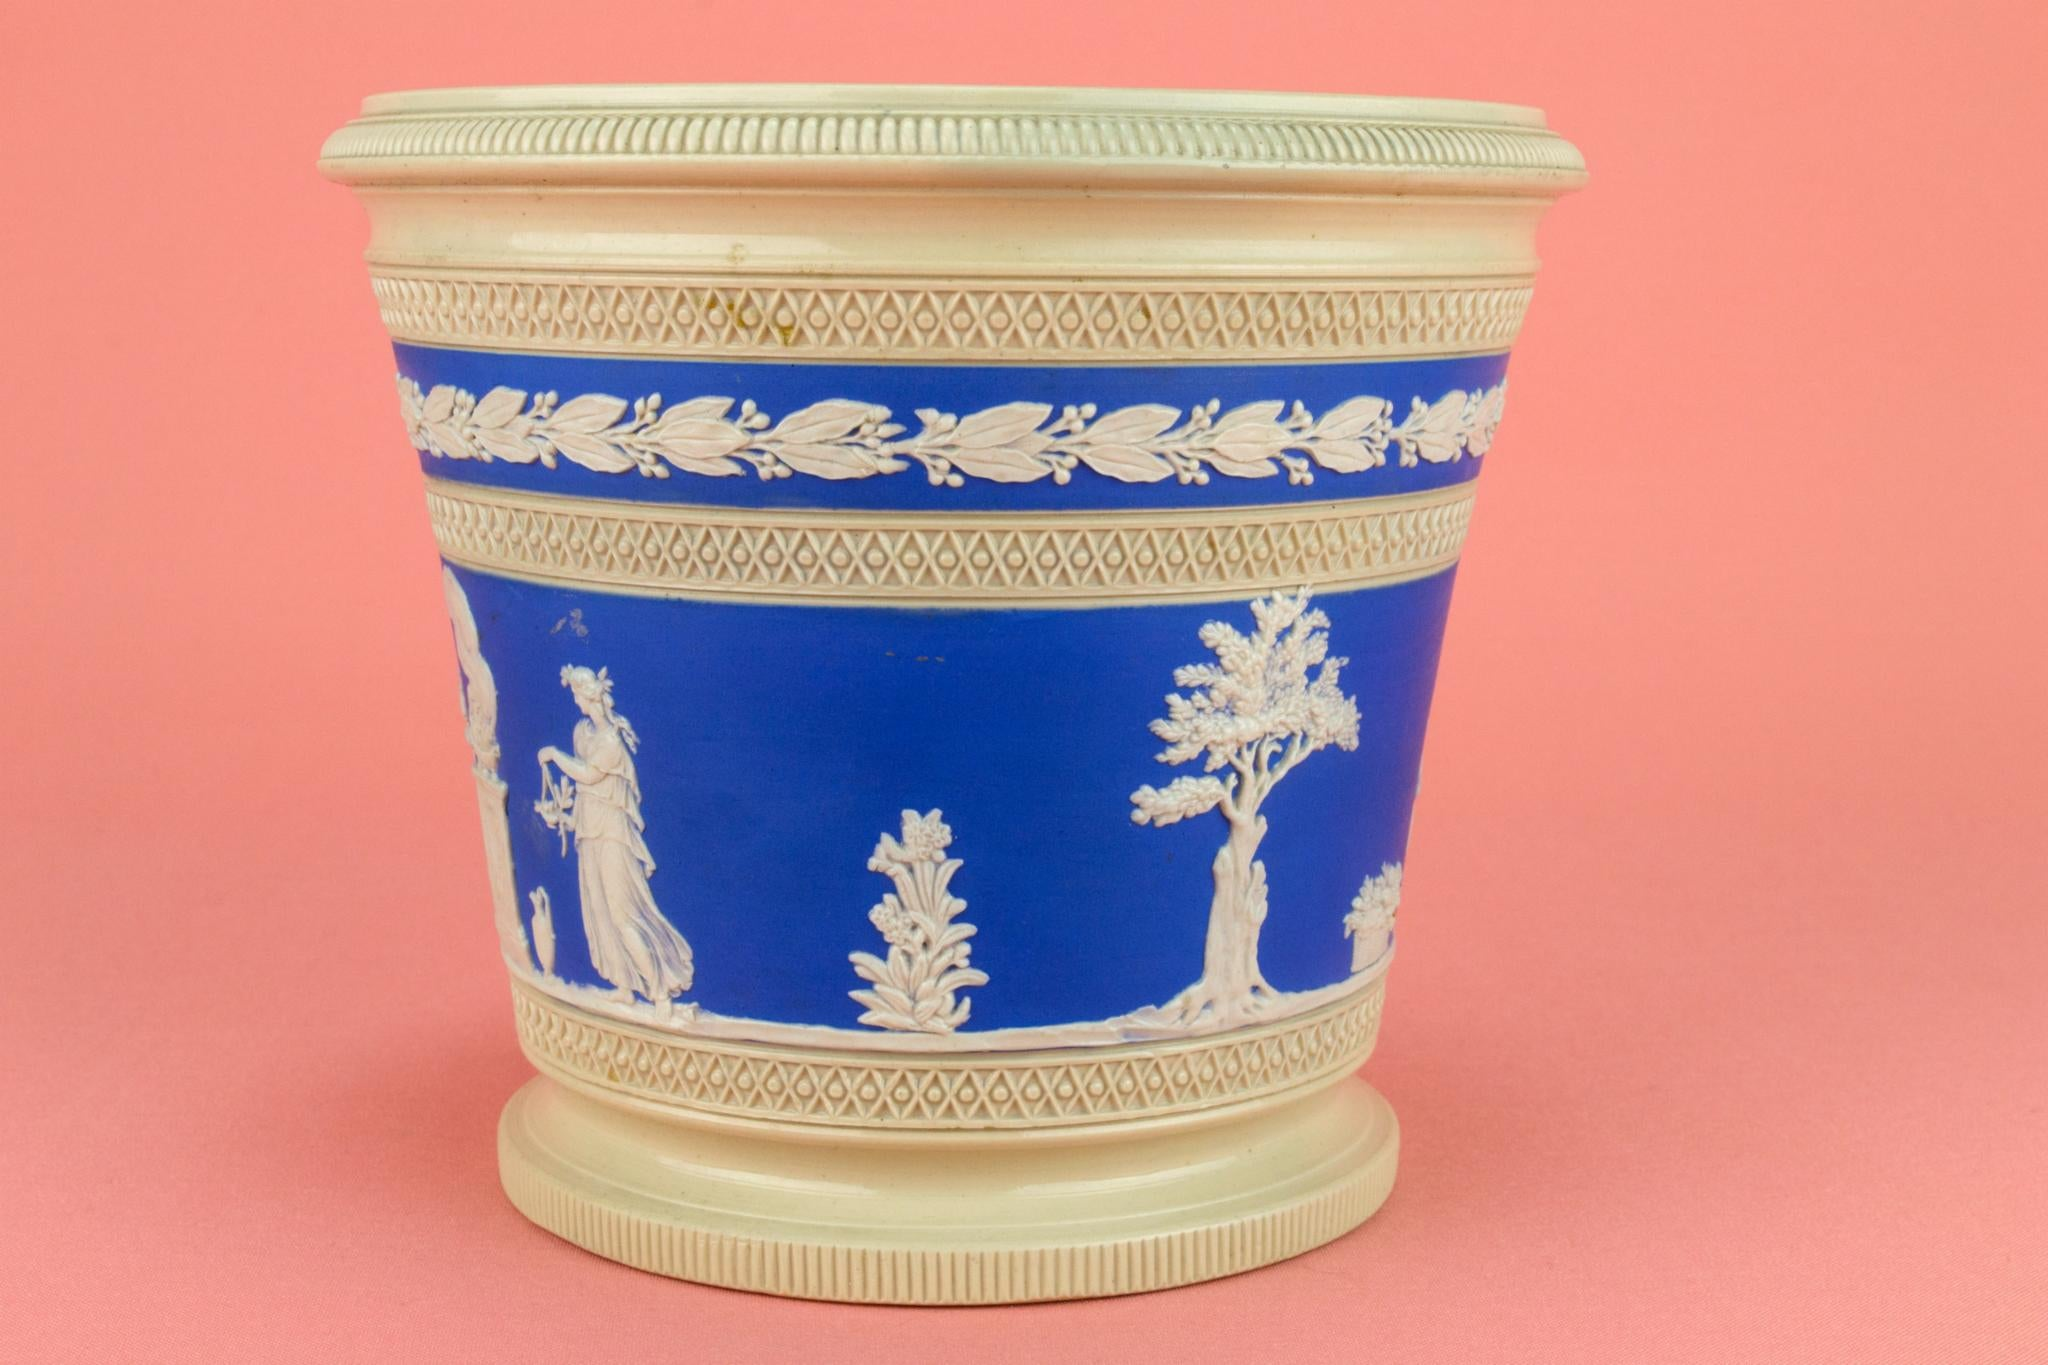 Blue and White Planter by Copeland, English Mid 19th Century